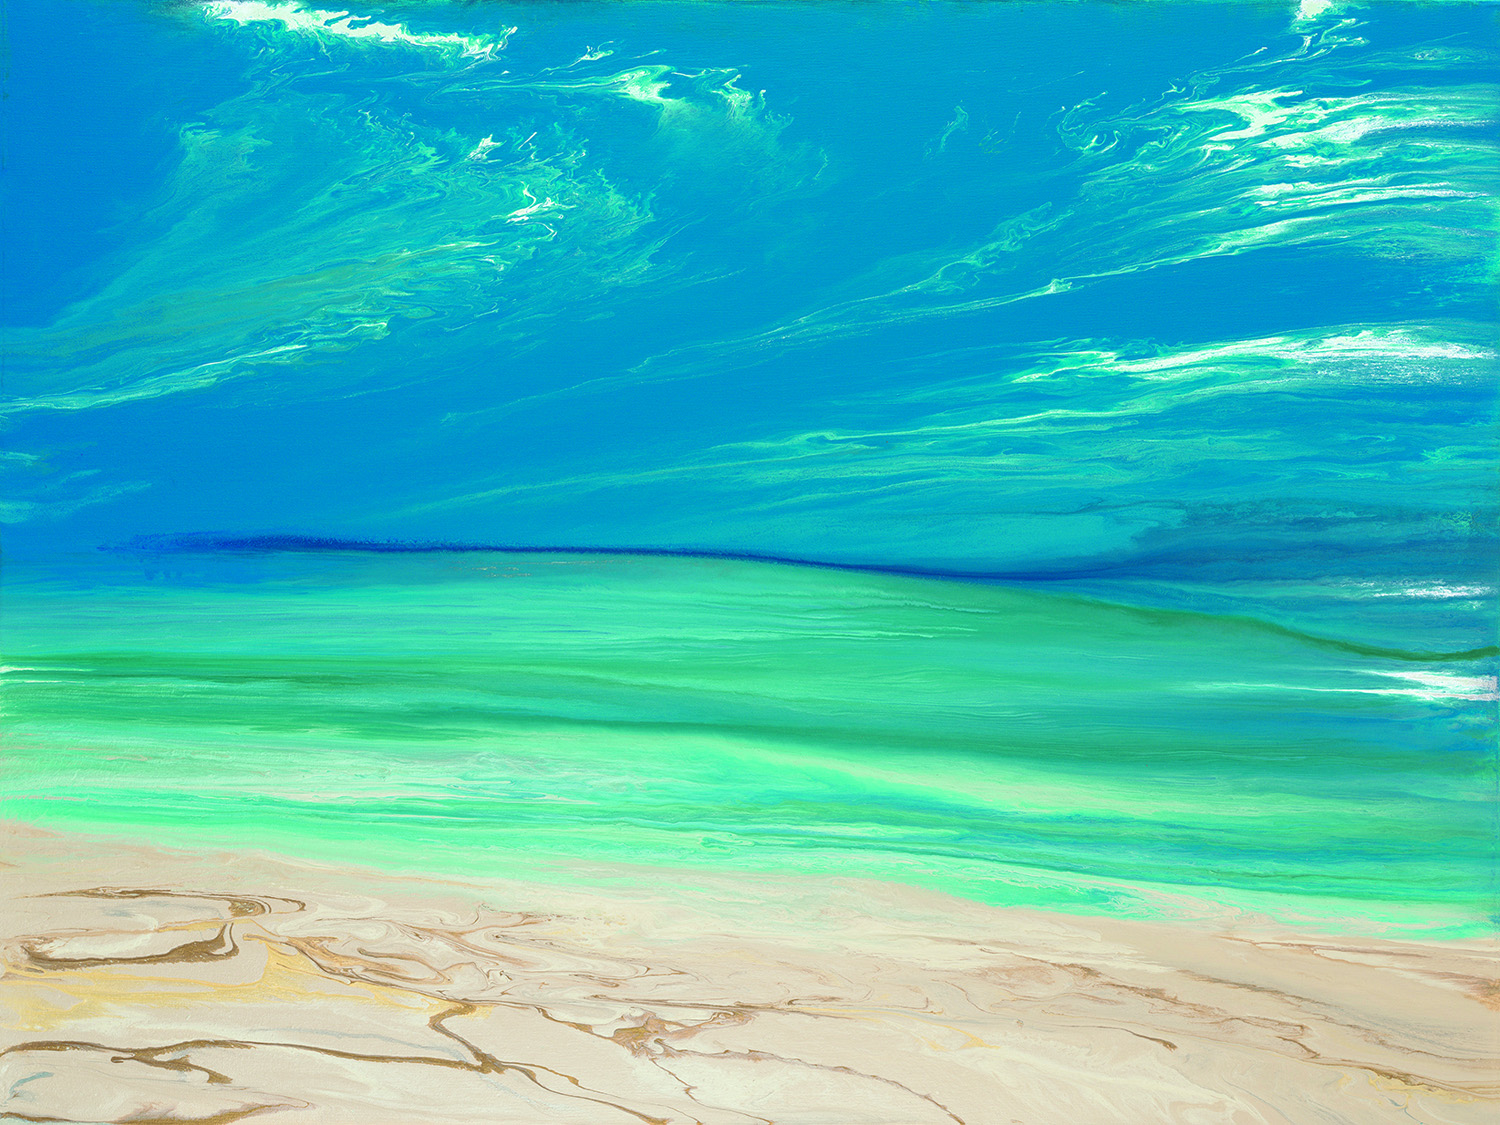 Pour painting 1 R6503_i_SOUTH_DaysofSummer copy